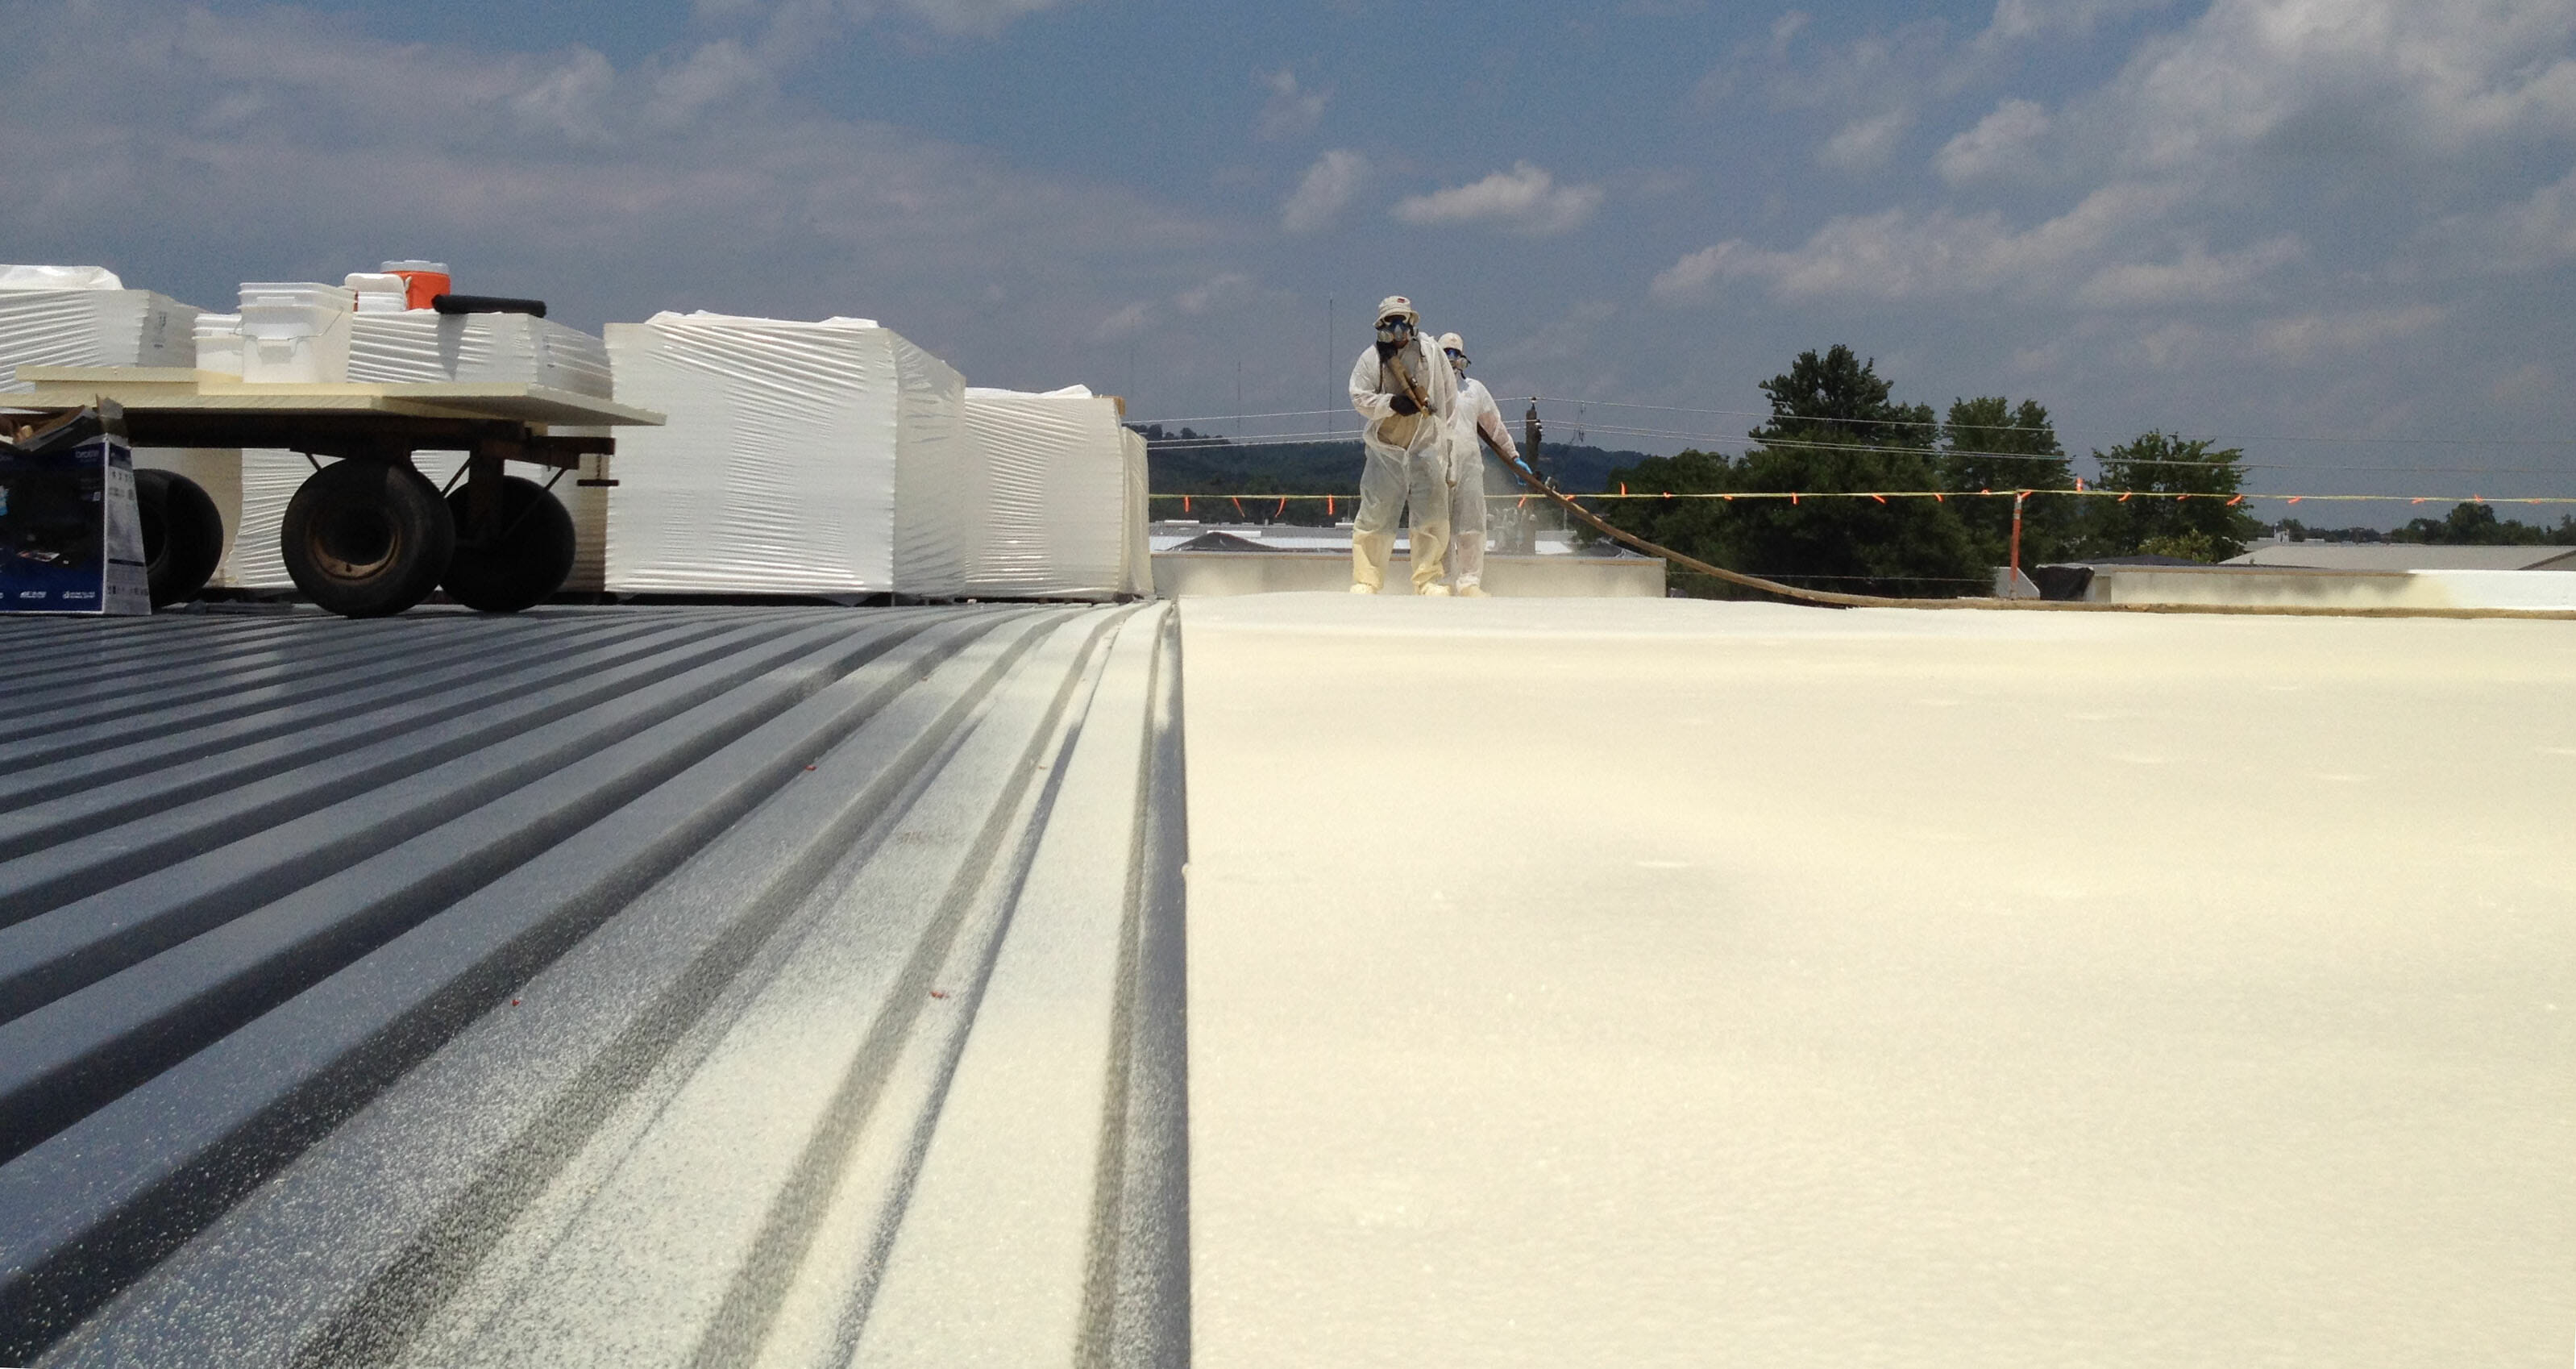 Spray Foam Roofing Cost - Roof Insulation - 2019 - Modernize